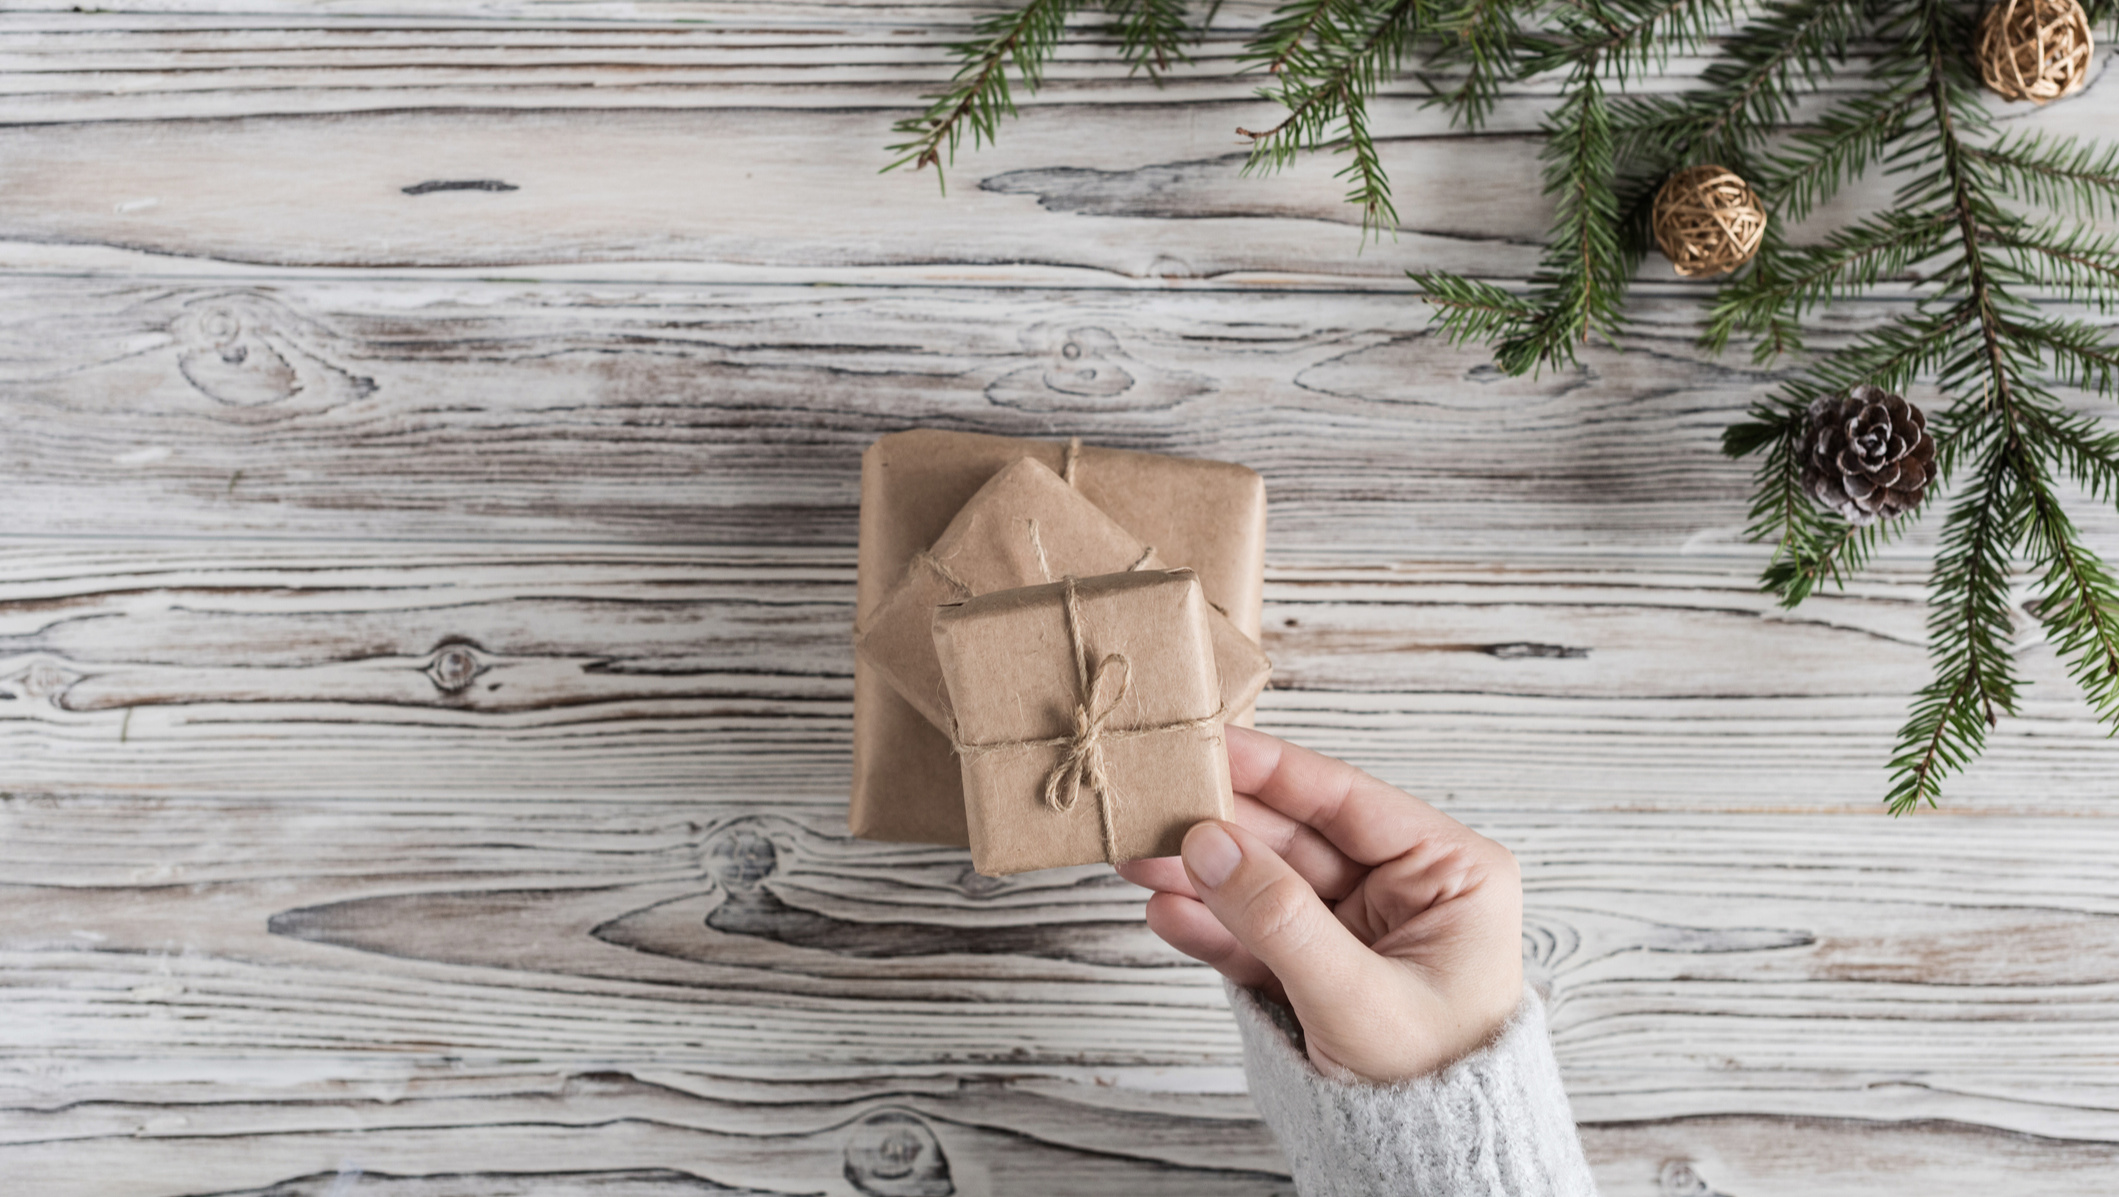 A Simple and Meaningful Christmas Gift Plan for Families